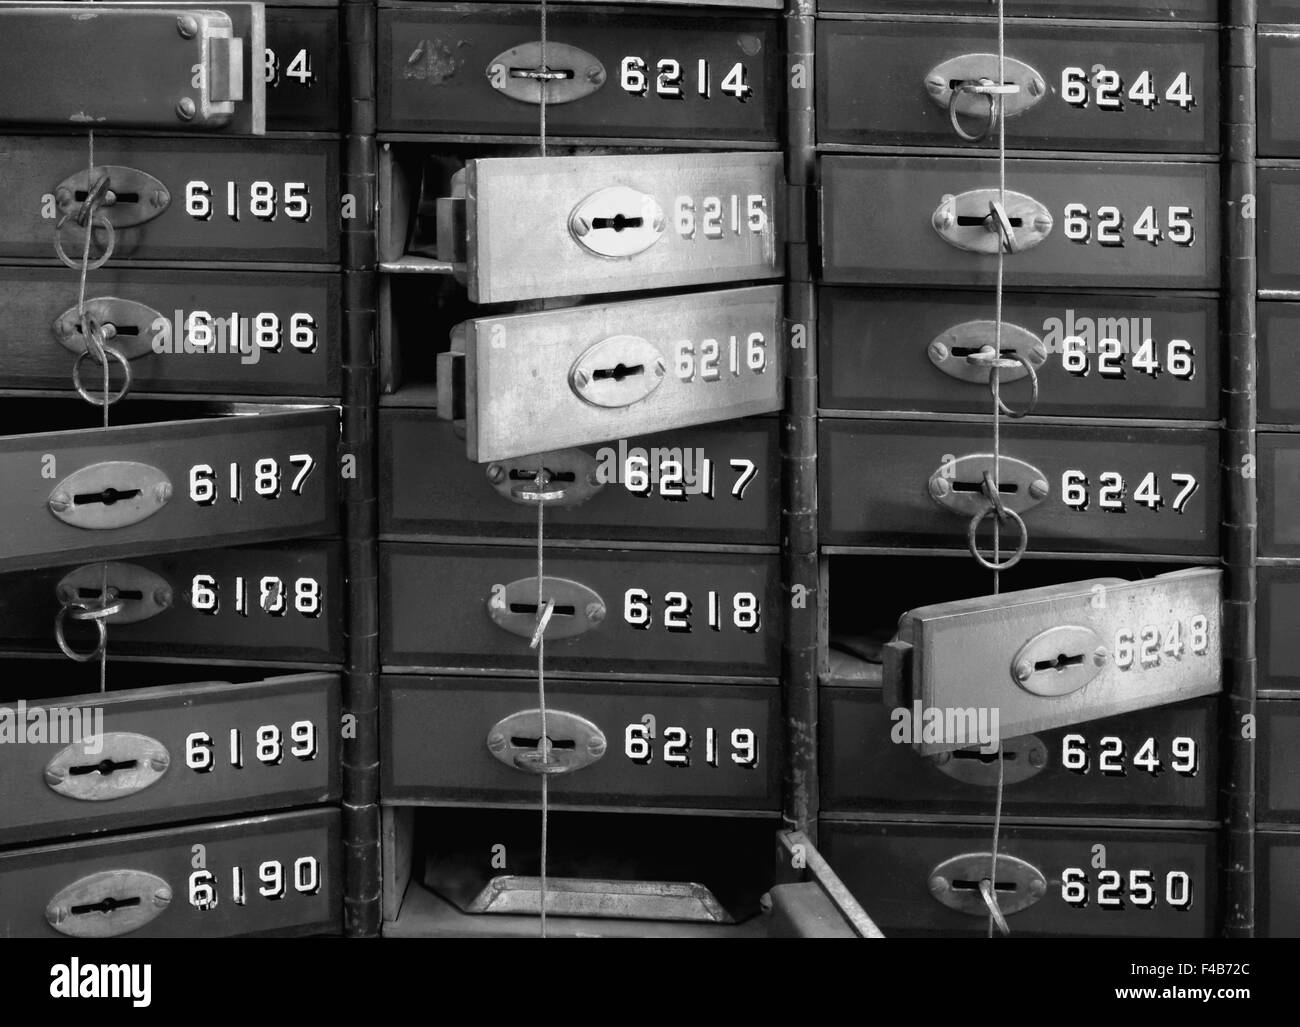 Deposit boxes in a Bank Stock Photo